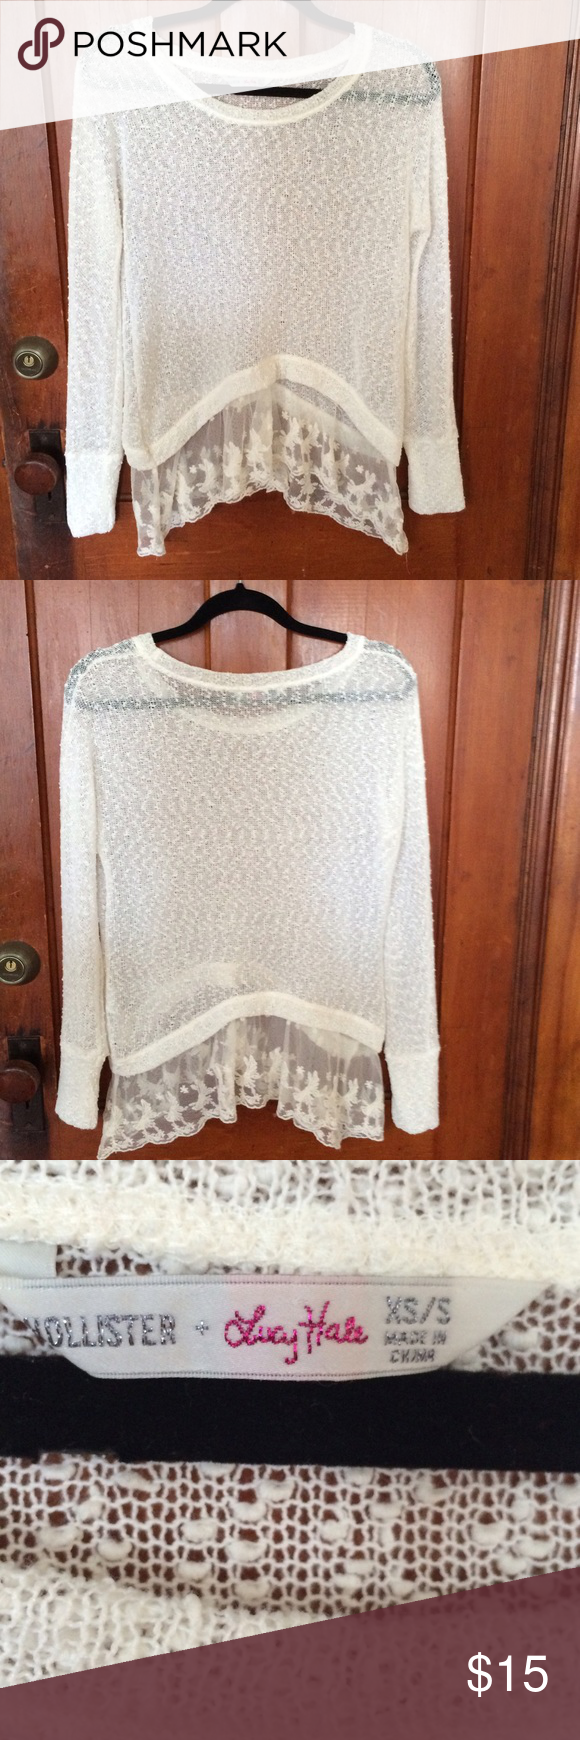 Hollister thin sweater (Lucy Hale) Very cute thin knitted sweater ...